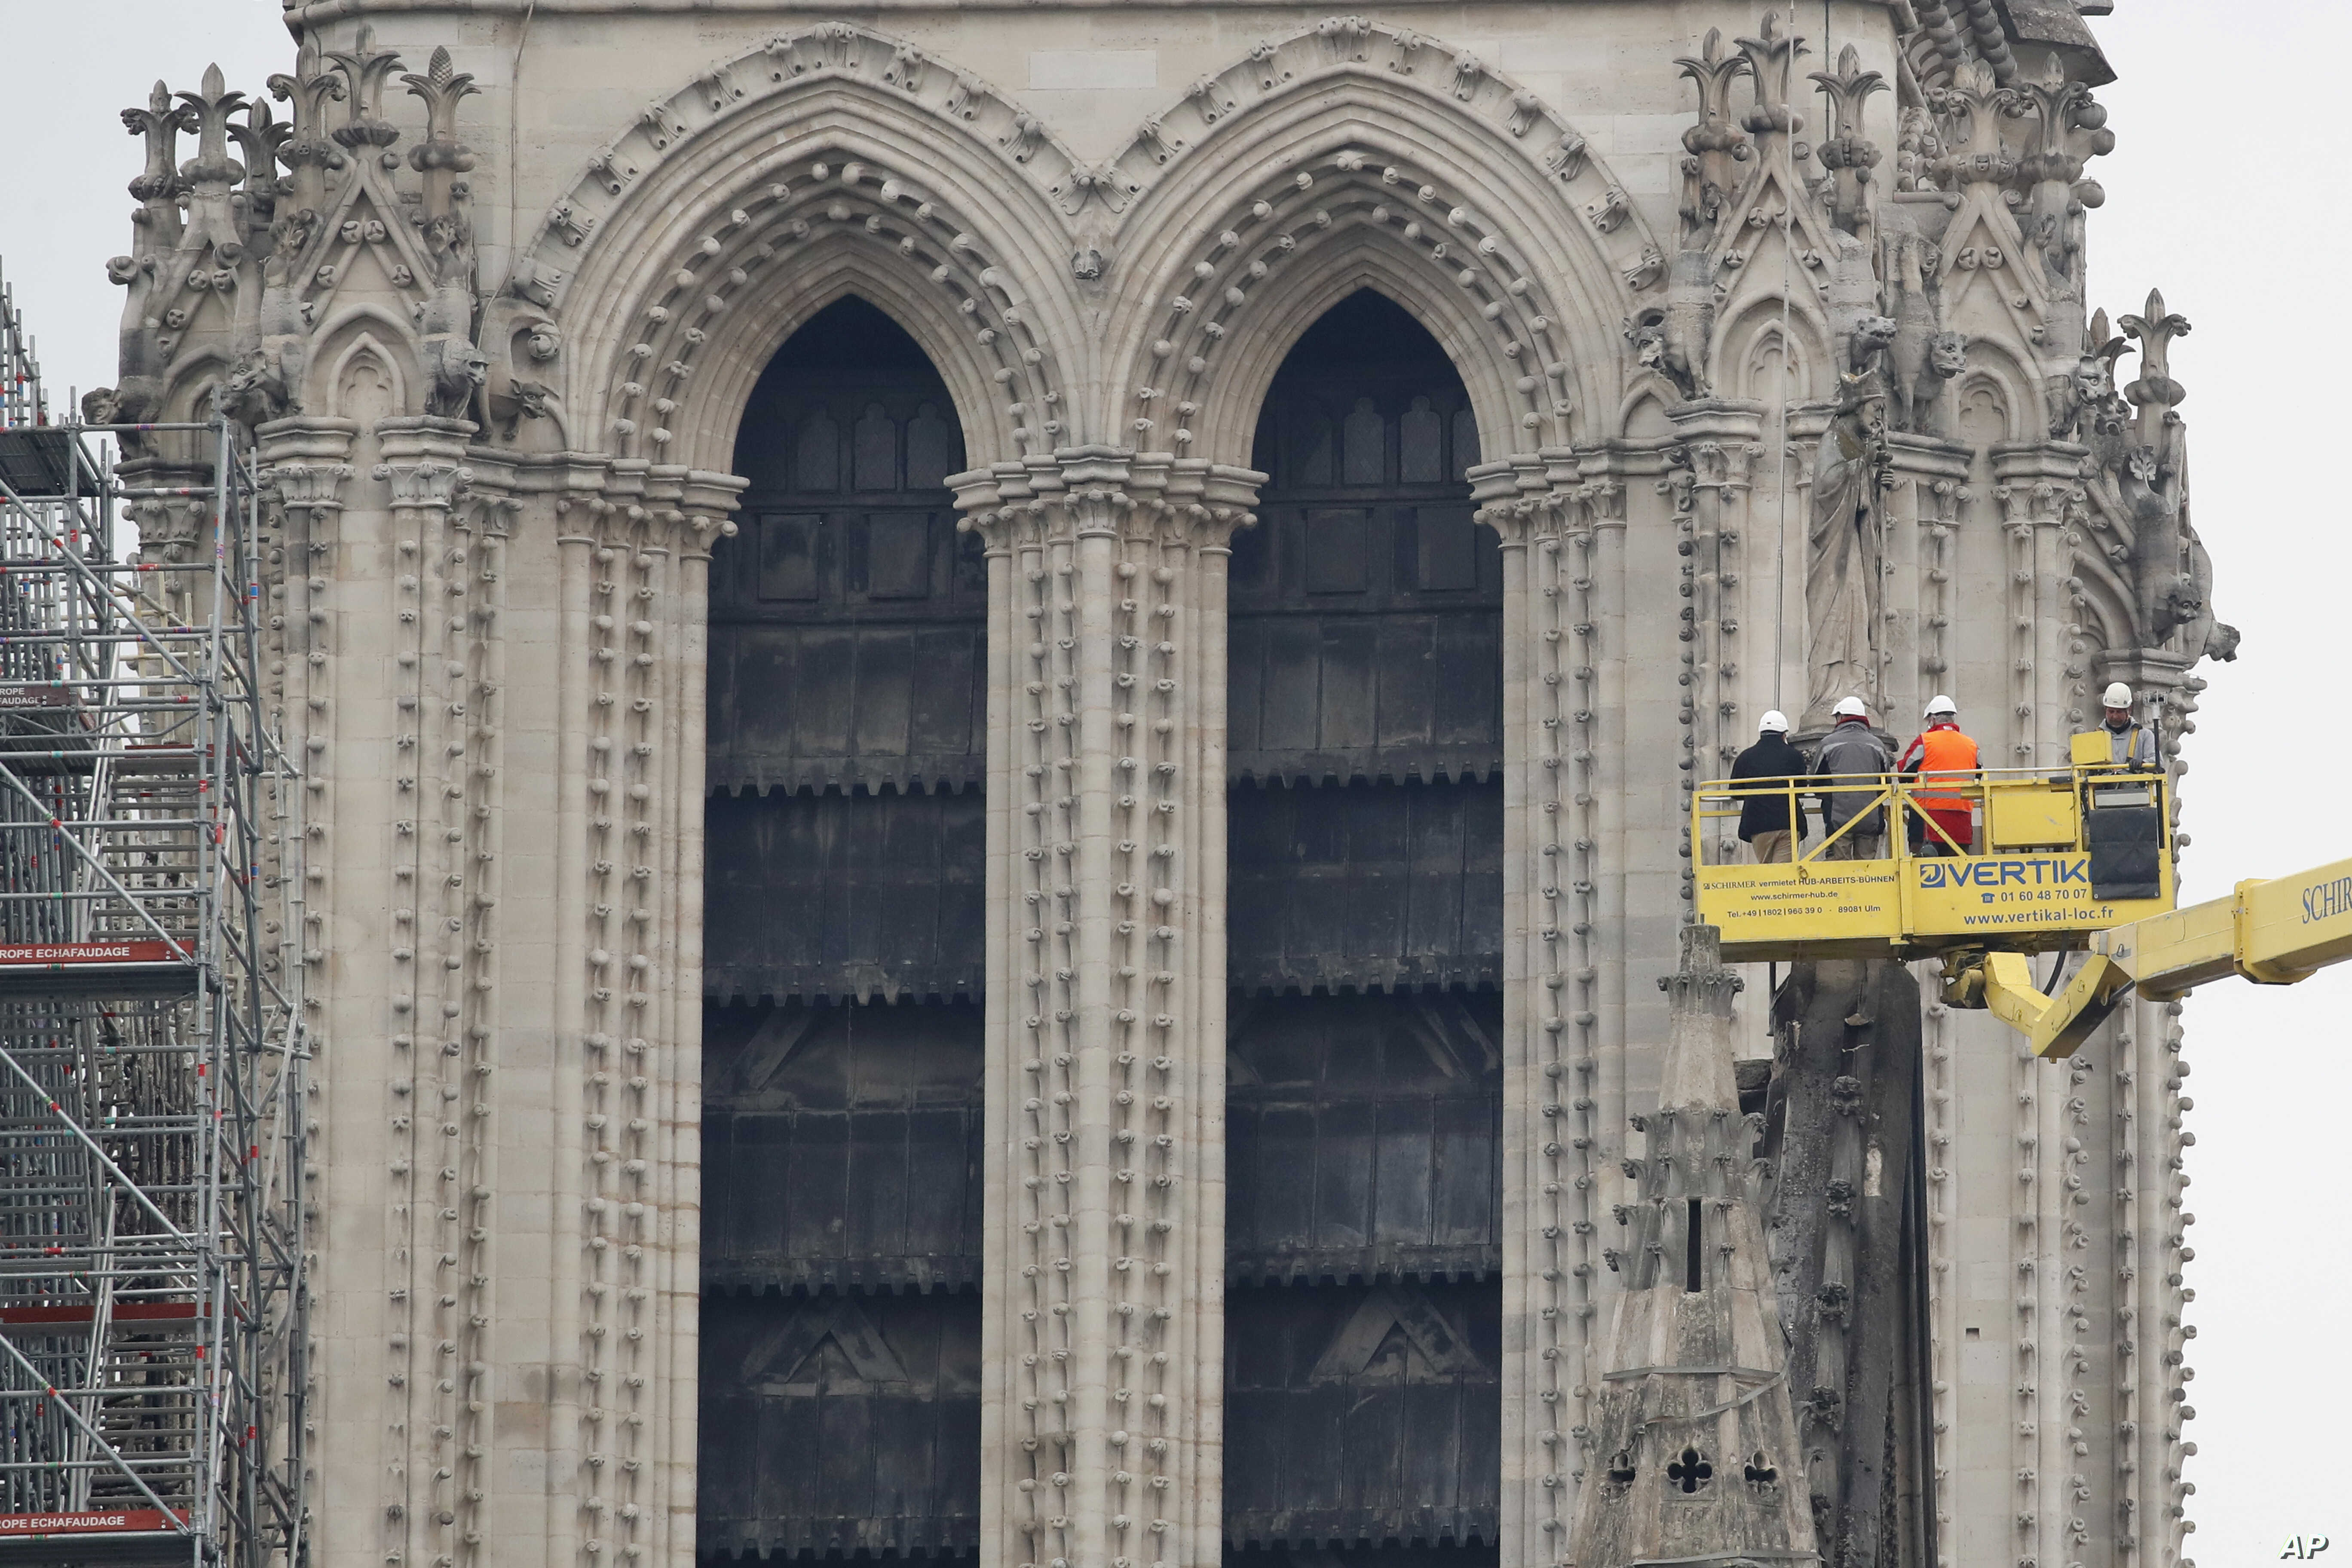 A crane lifts experts as they inspect the damaged Notre Dame cathedral after the fire in Paris, Apr. 16, 2019.